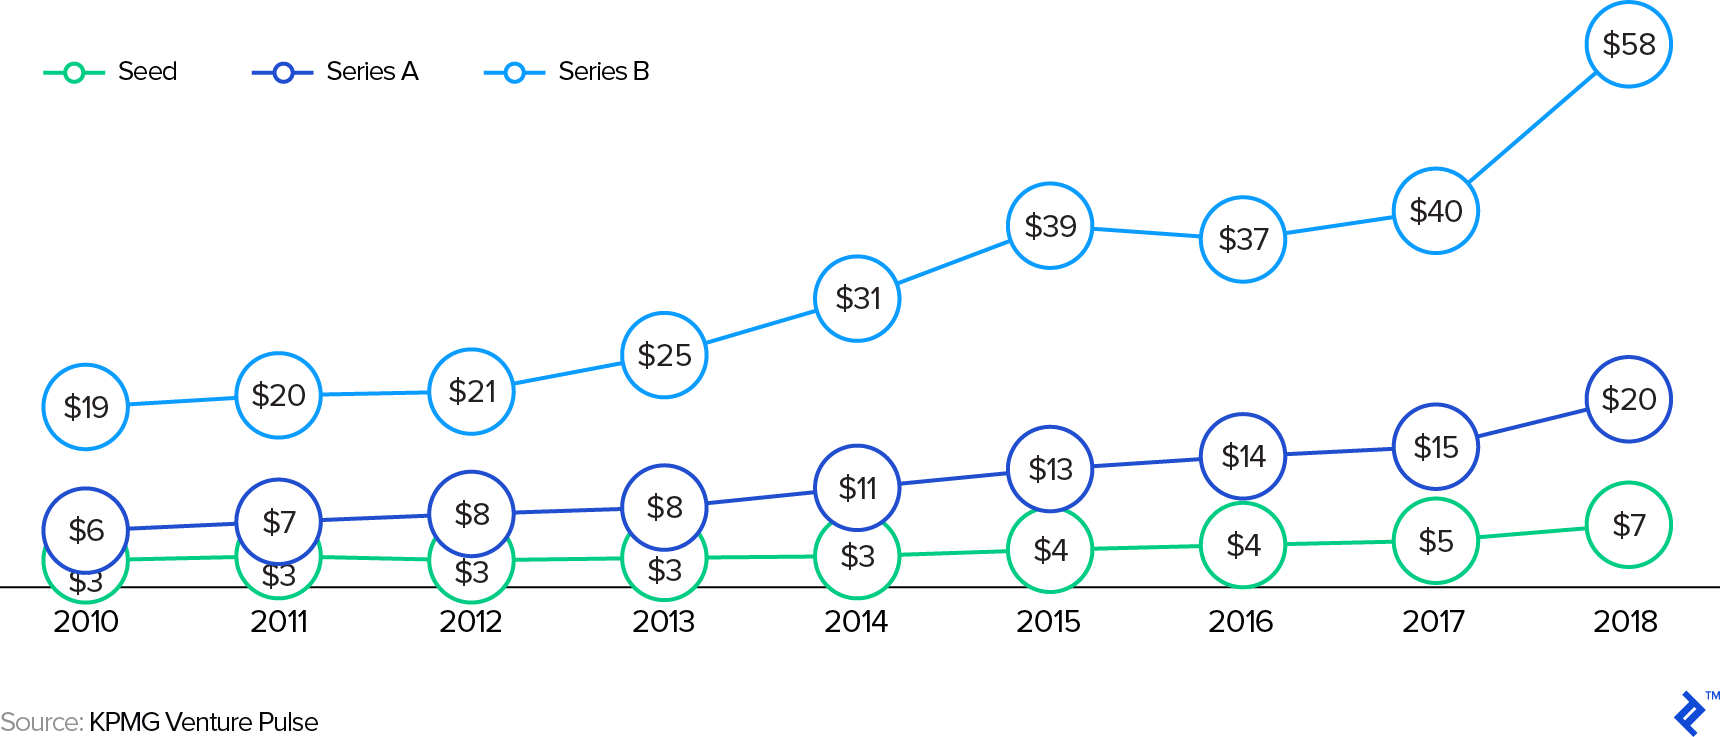 2010 - 2018 Global Pre-Money Startup Valuation by Series ($m)